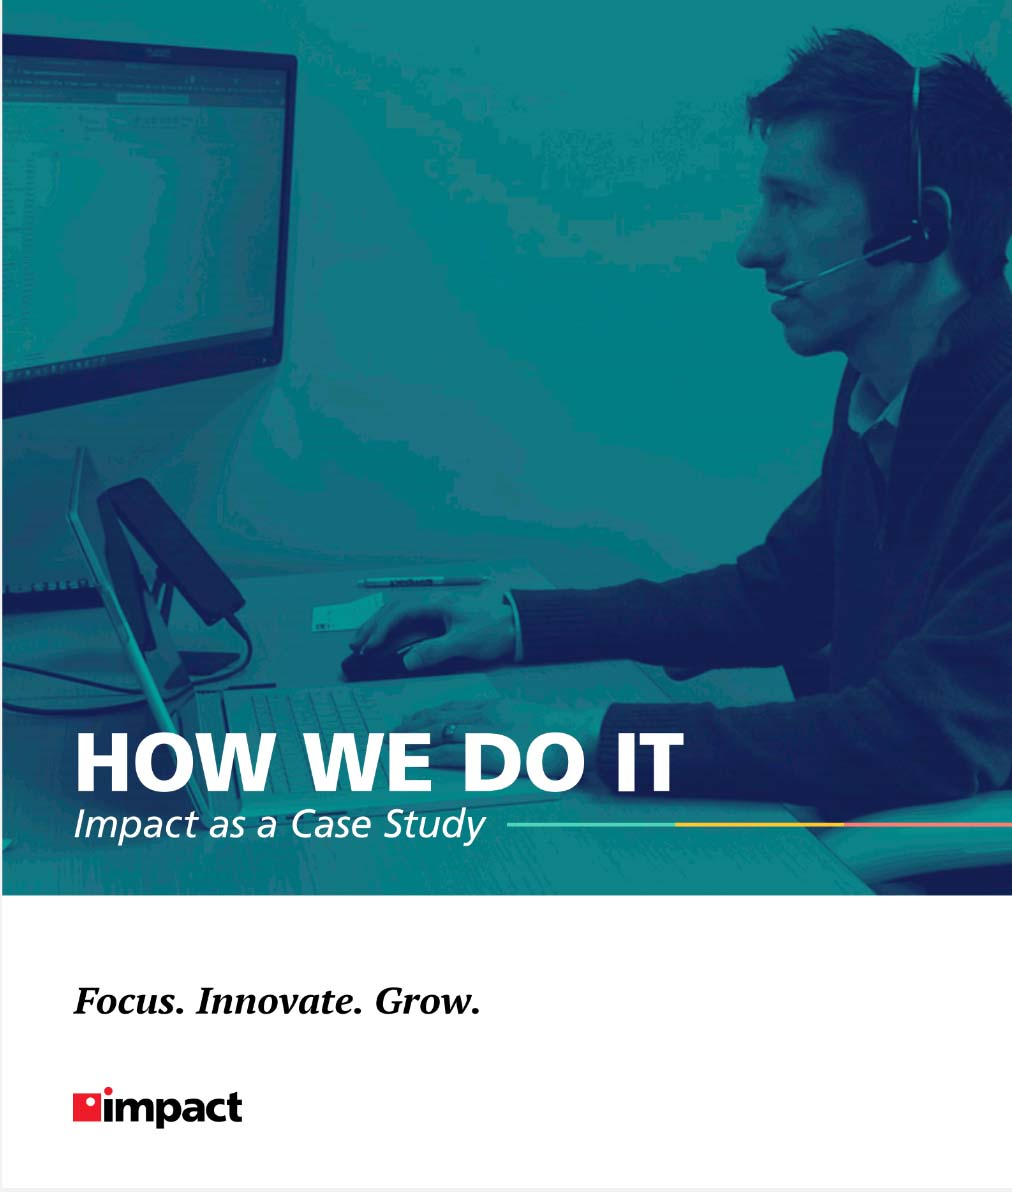 impact-as-a-digital-innovation-case-study-cover-page